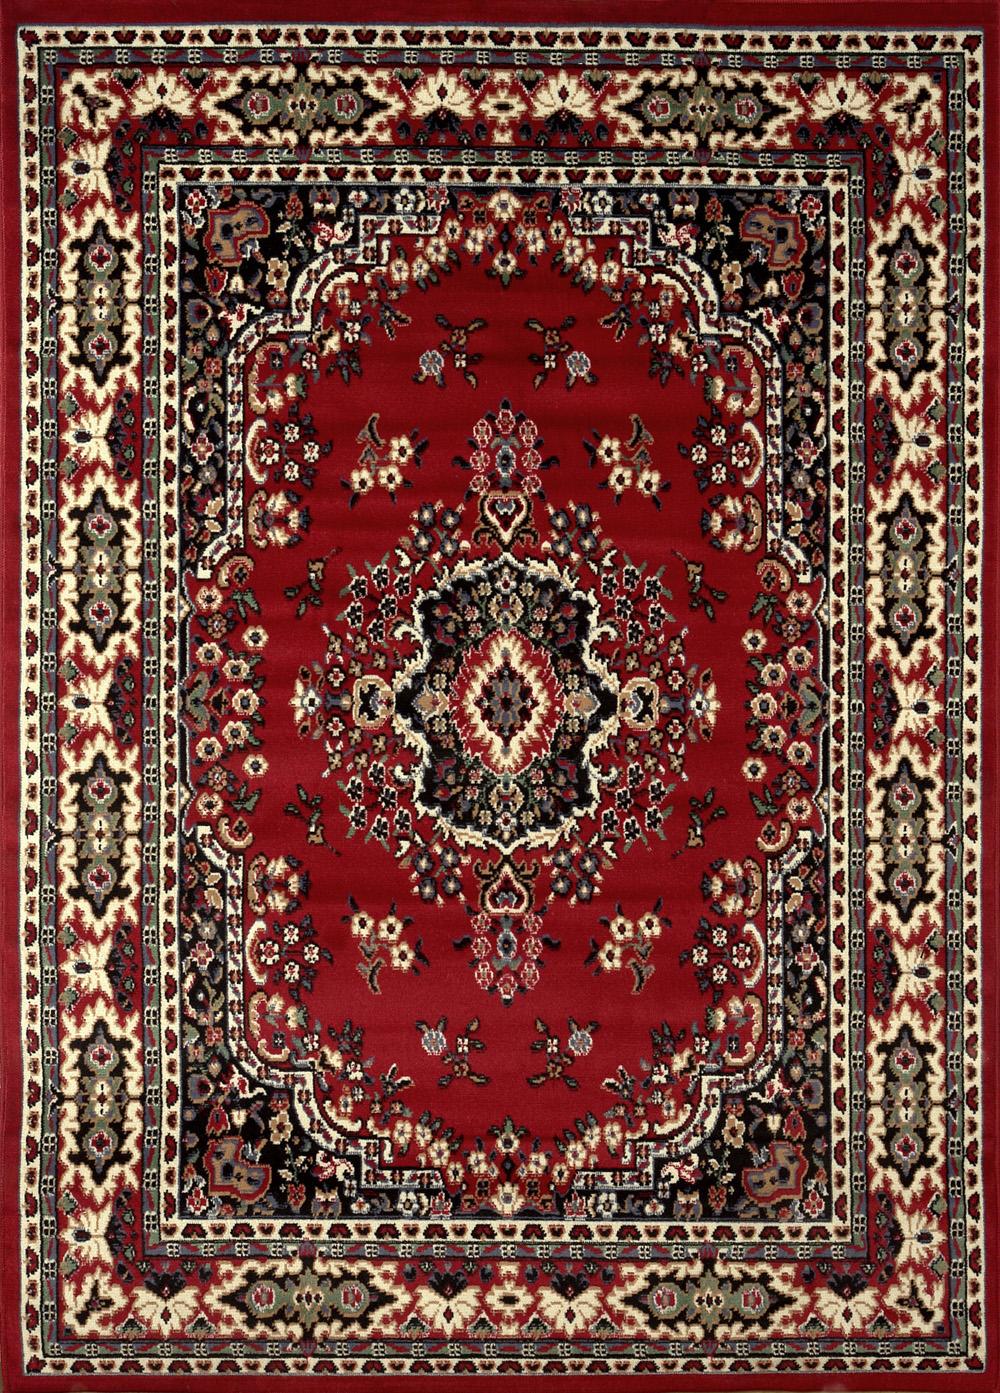 lot july carpets bonhams and in san angeles auctions rug oriental los sale for rugs francisco